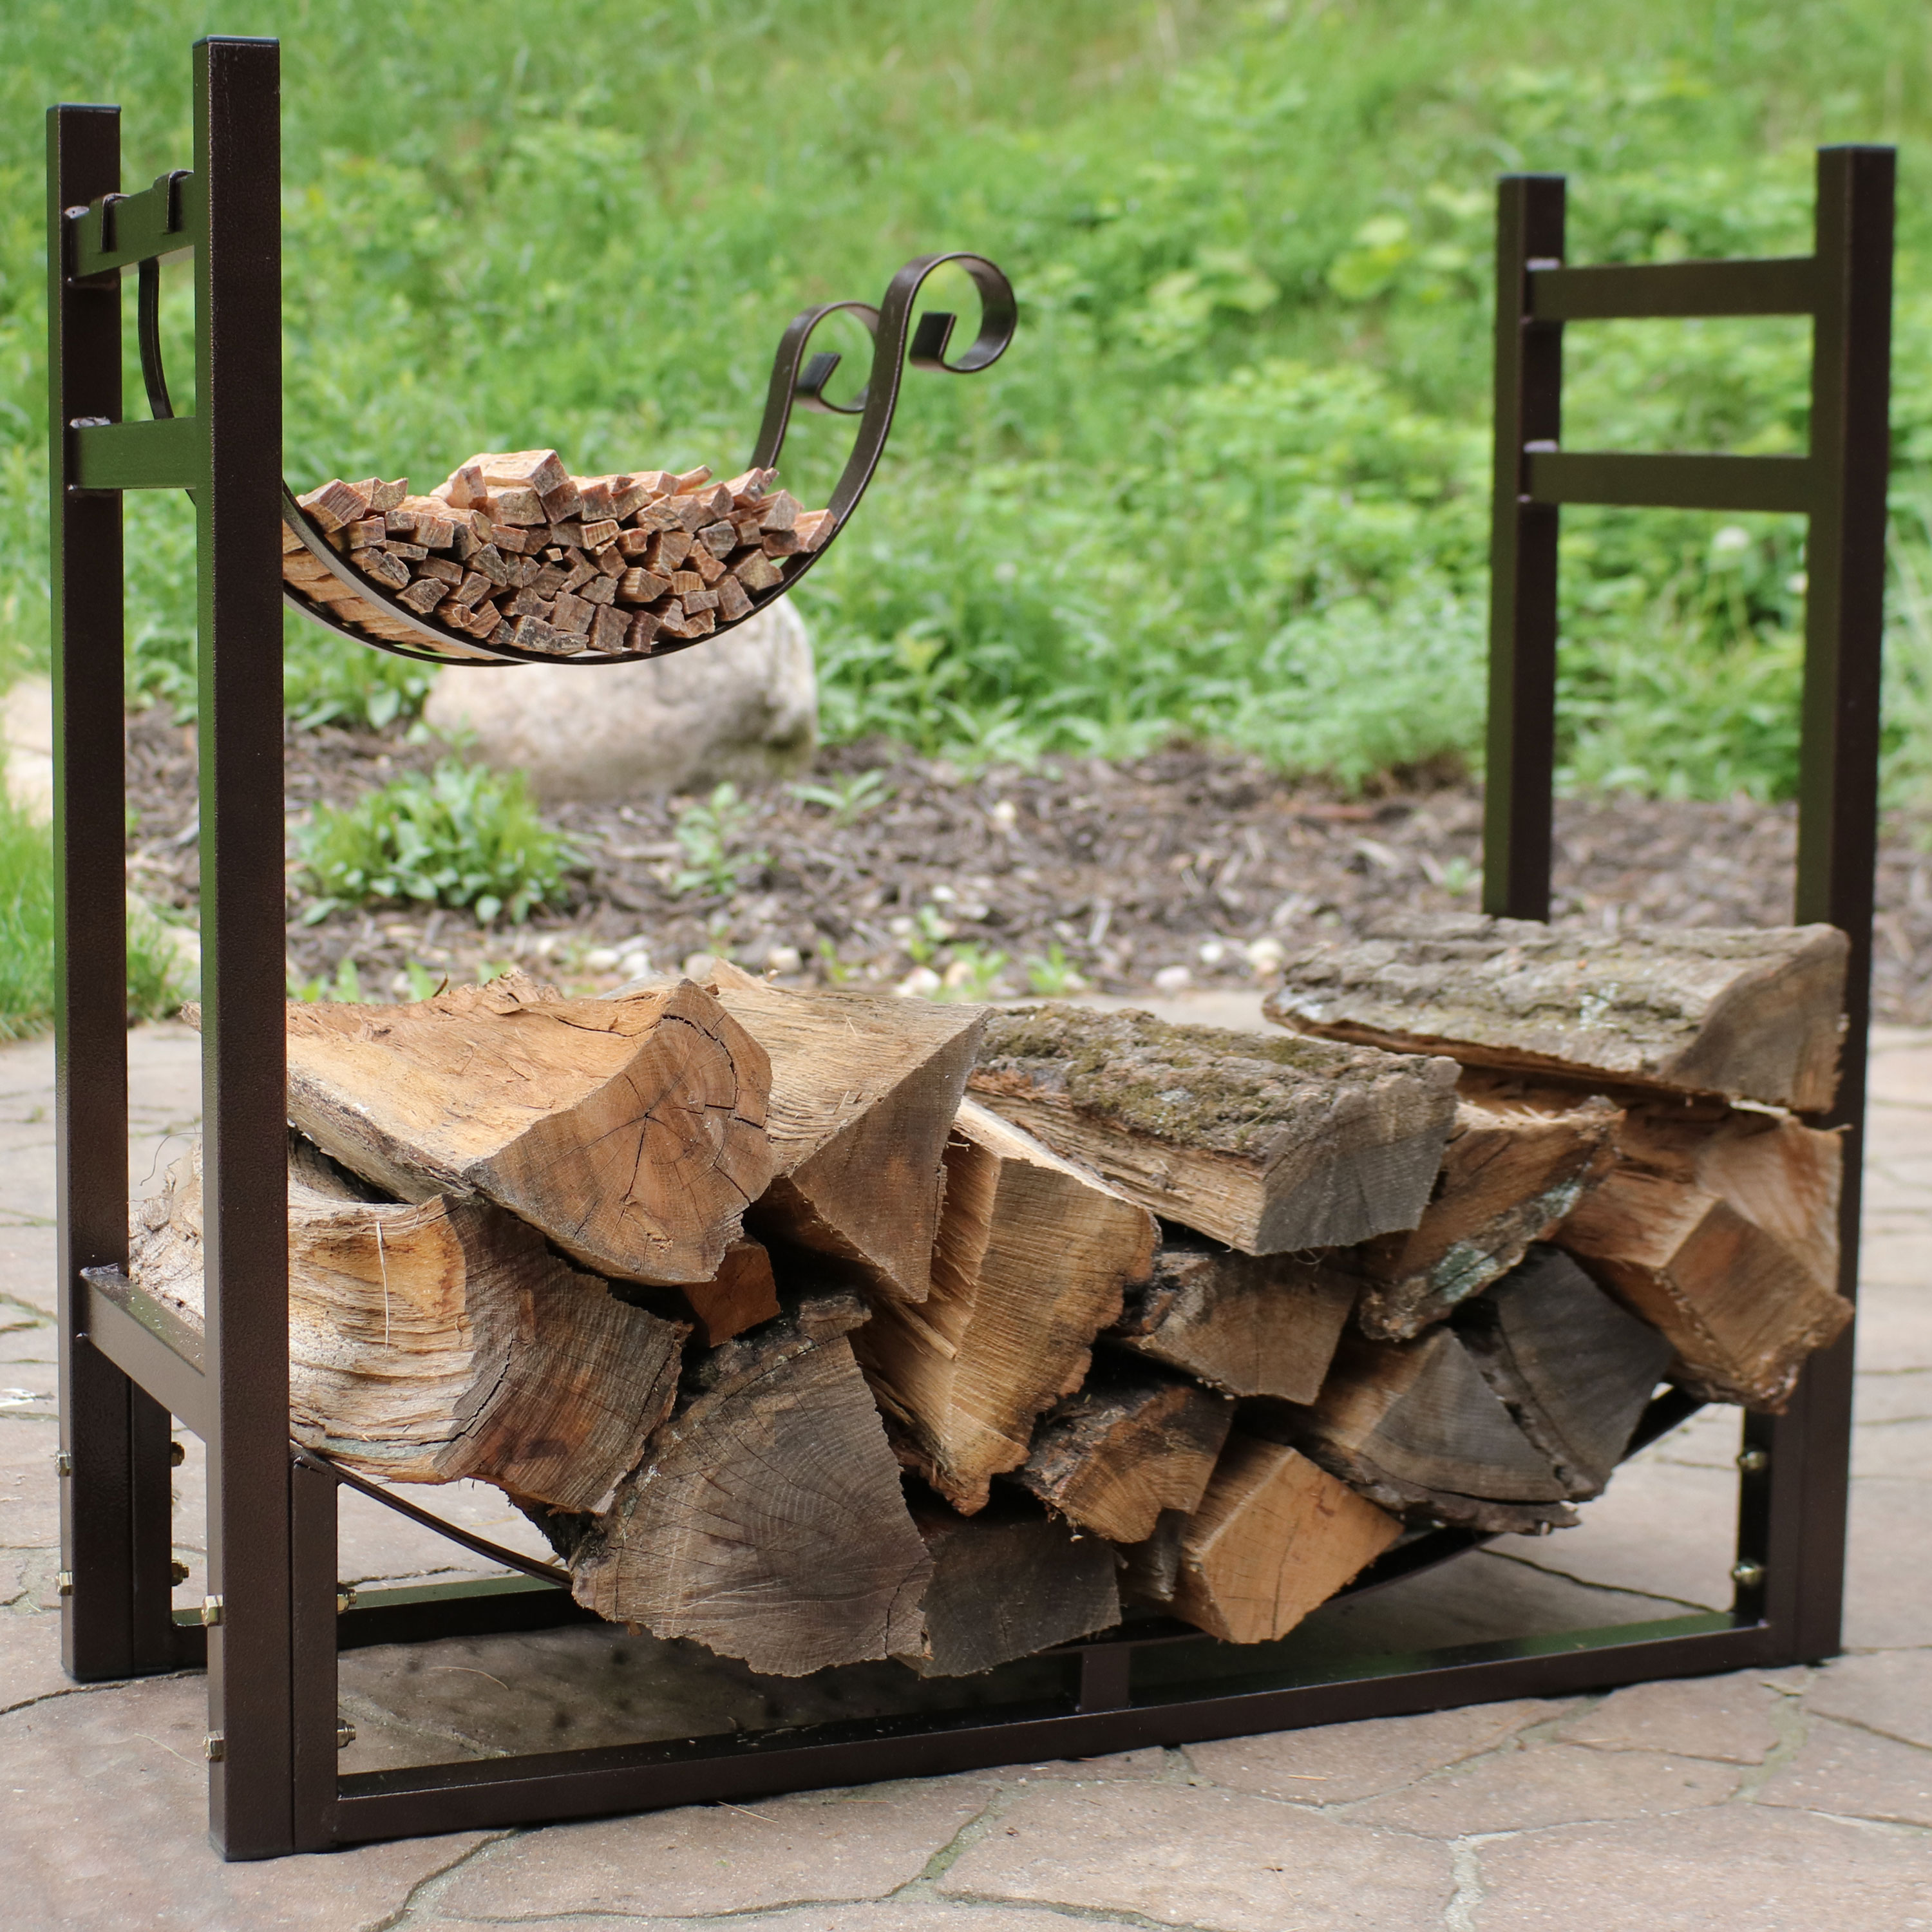 Sunnydaze Indoor/Outdoor Firewood Log Rack with Kindling Holder, 33 Inch Wide x 30 Inch